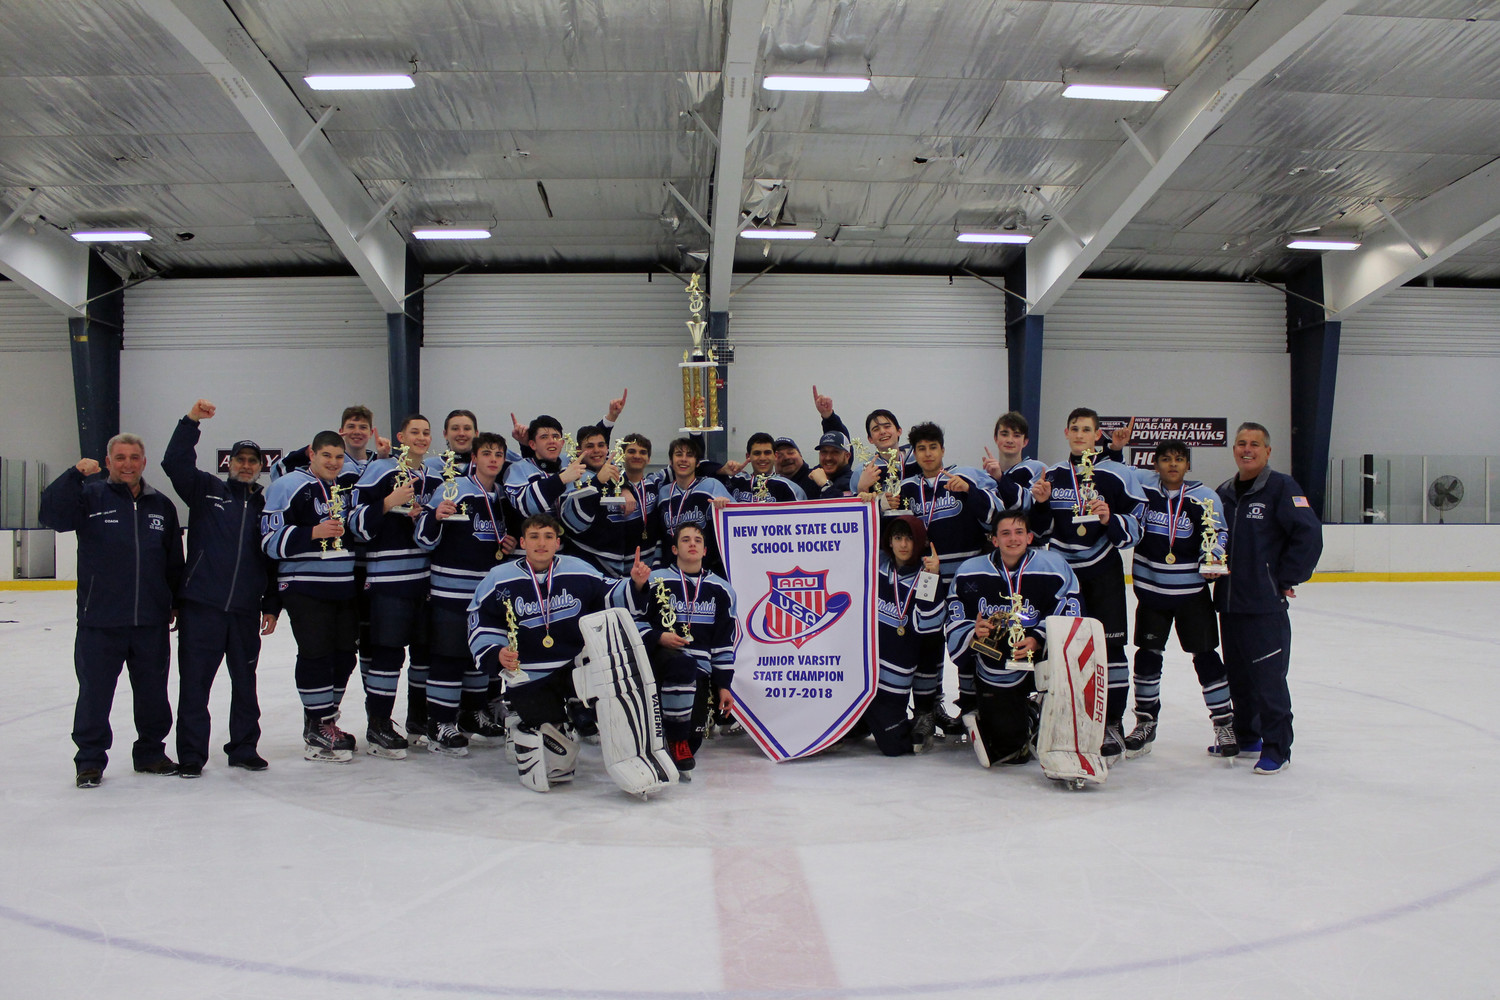 Oceanside Ice Hockey's junior varsity team celebrated its historic win minutes after securing the state championship on March 4.